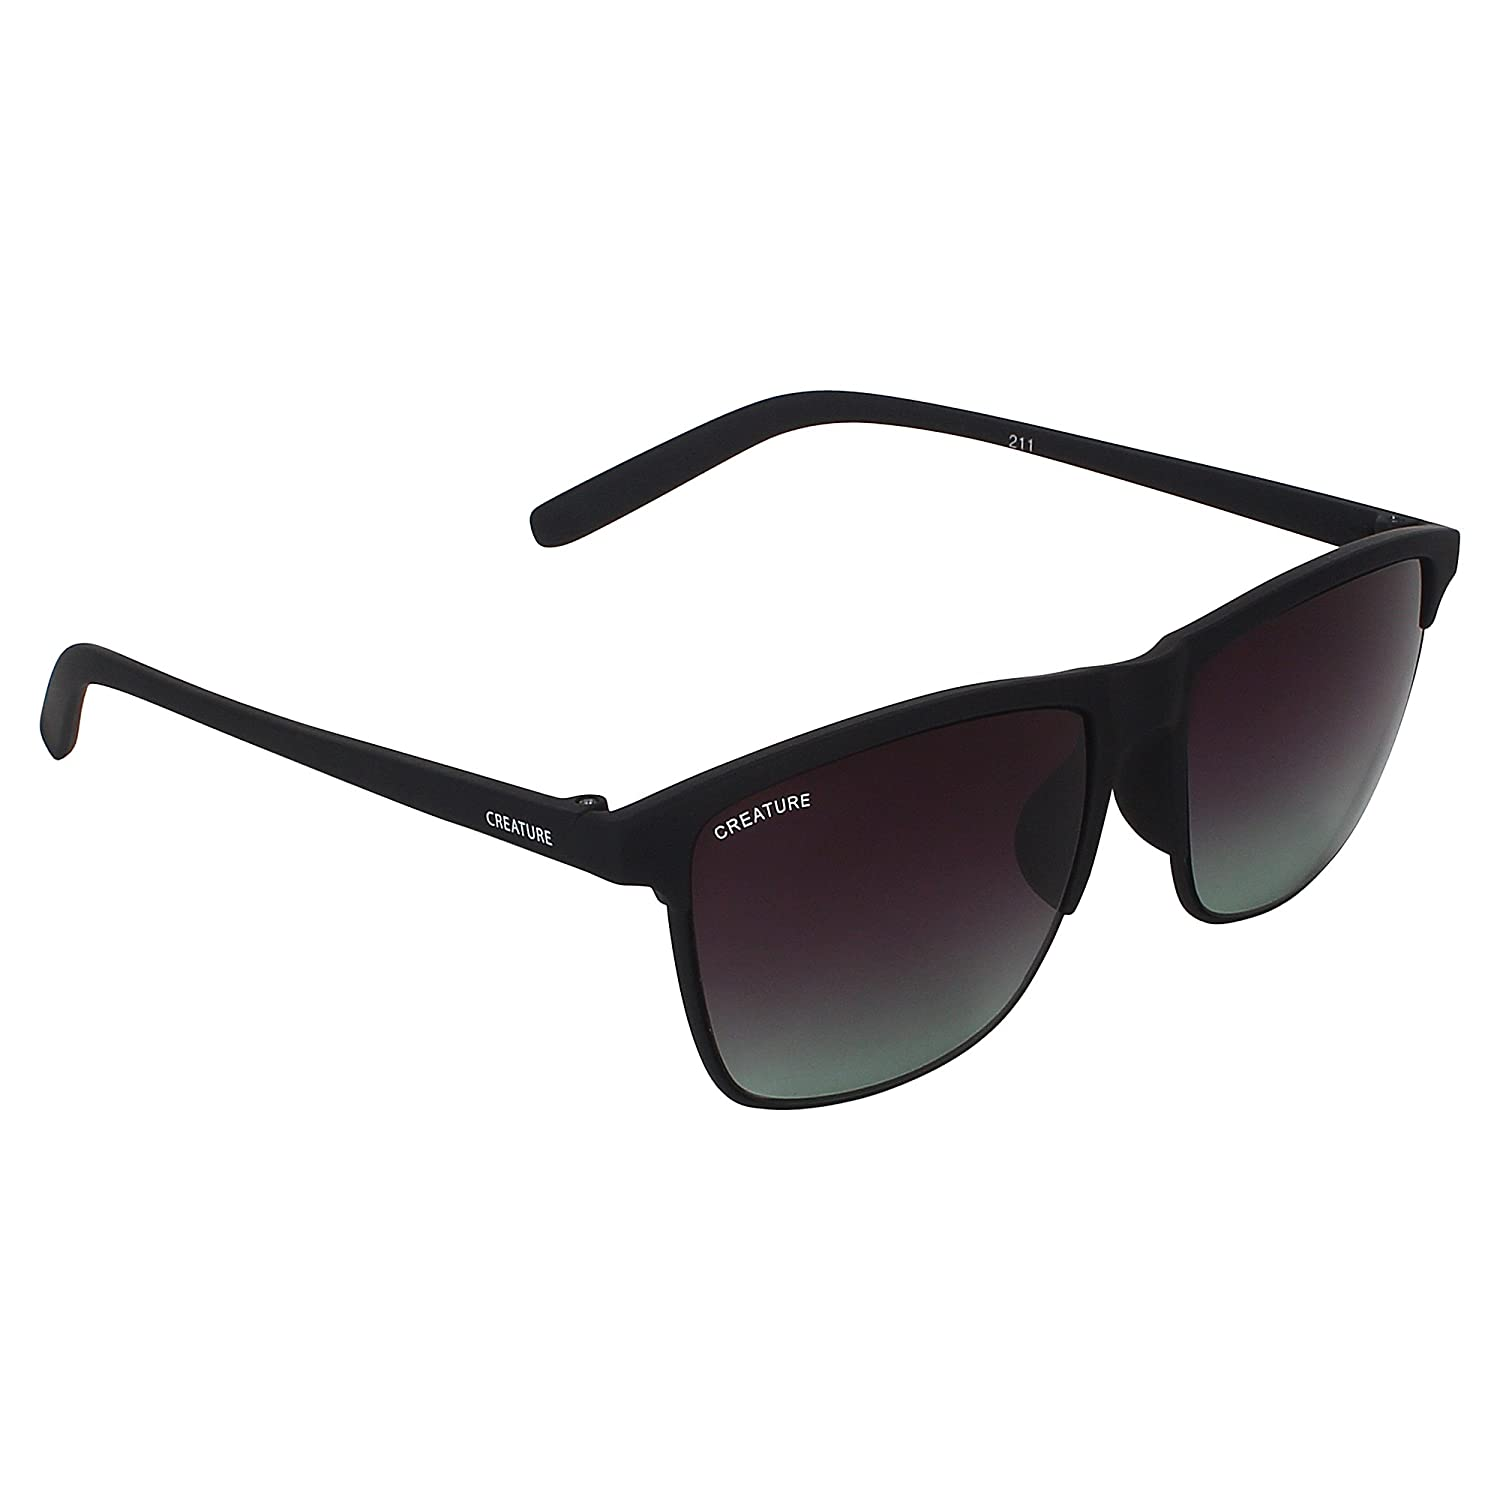 c44c7e15df6 CREATURE Matt Finish Club Master Wayfarer Uv Protected Unisex Sunglasses(Doit-006